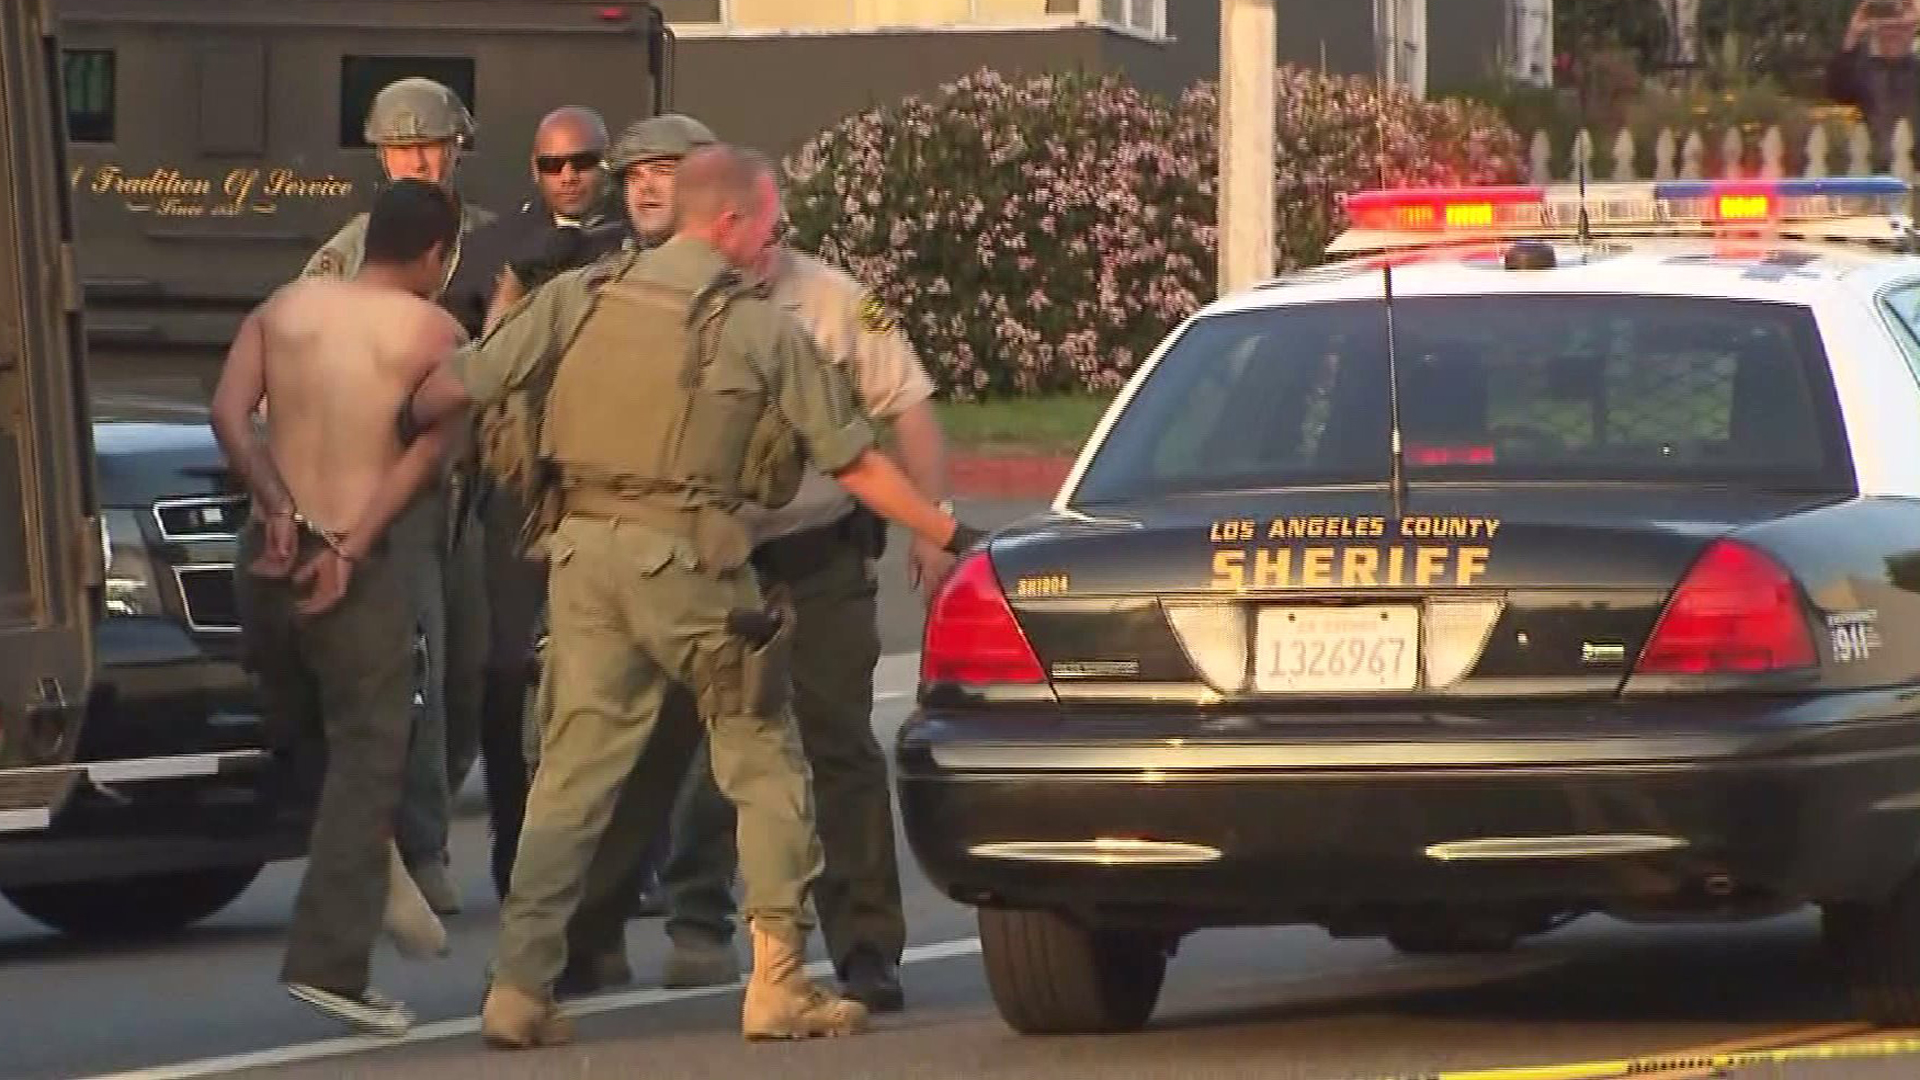 Sheriff's deputies identified David Carrillo, pictured, as the man detained on Saturday, Feb. 21, 2015, after an hourslong standoff in Santa Monica. (Credit: KTLA)